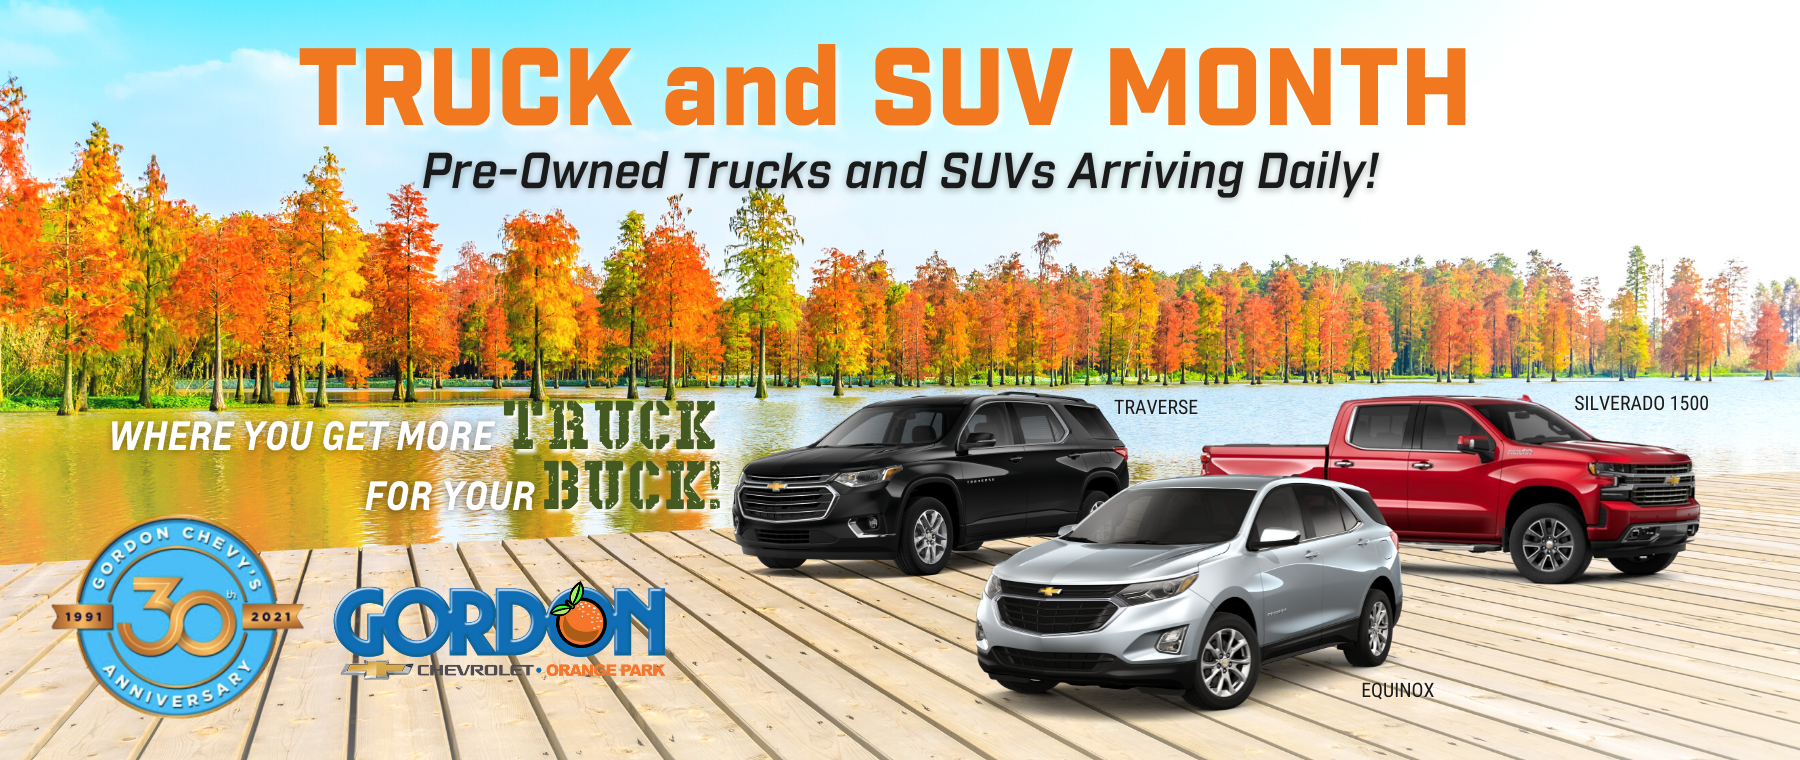 Truck and SUV Month. Pre-Owned Trucks and SUV's Arriving Daily